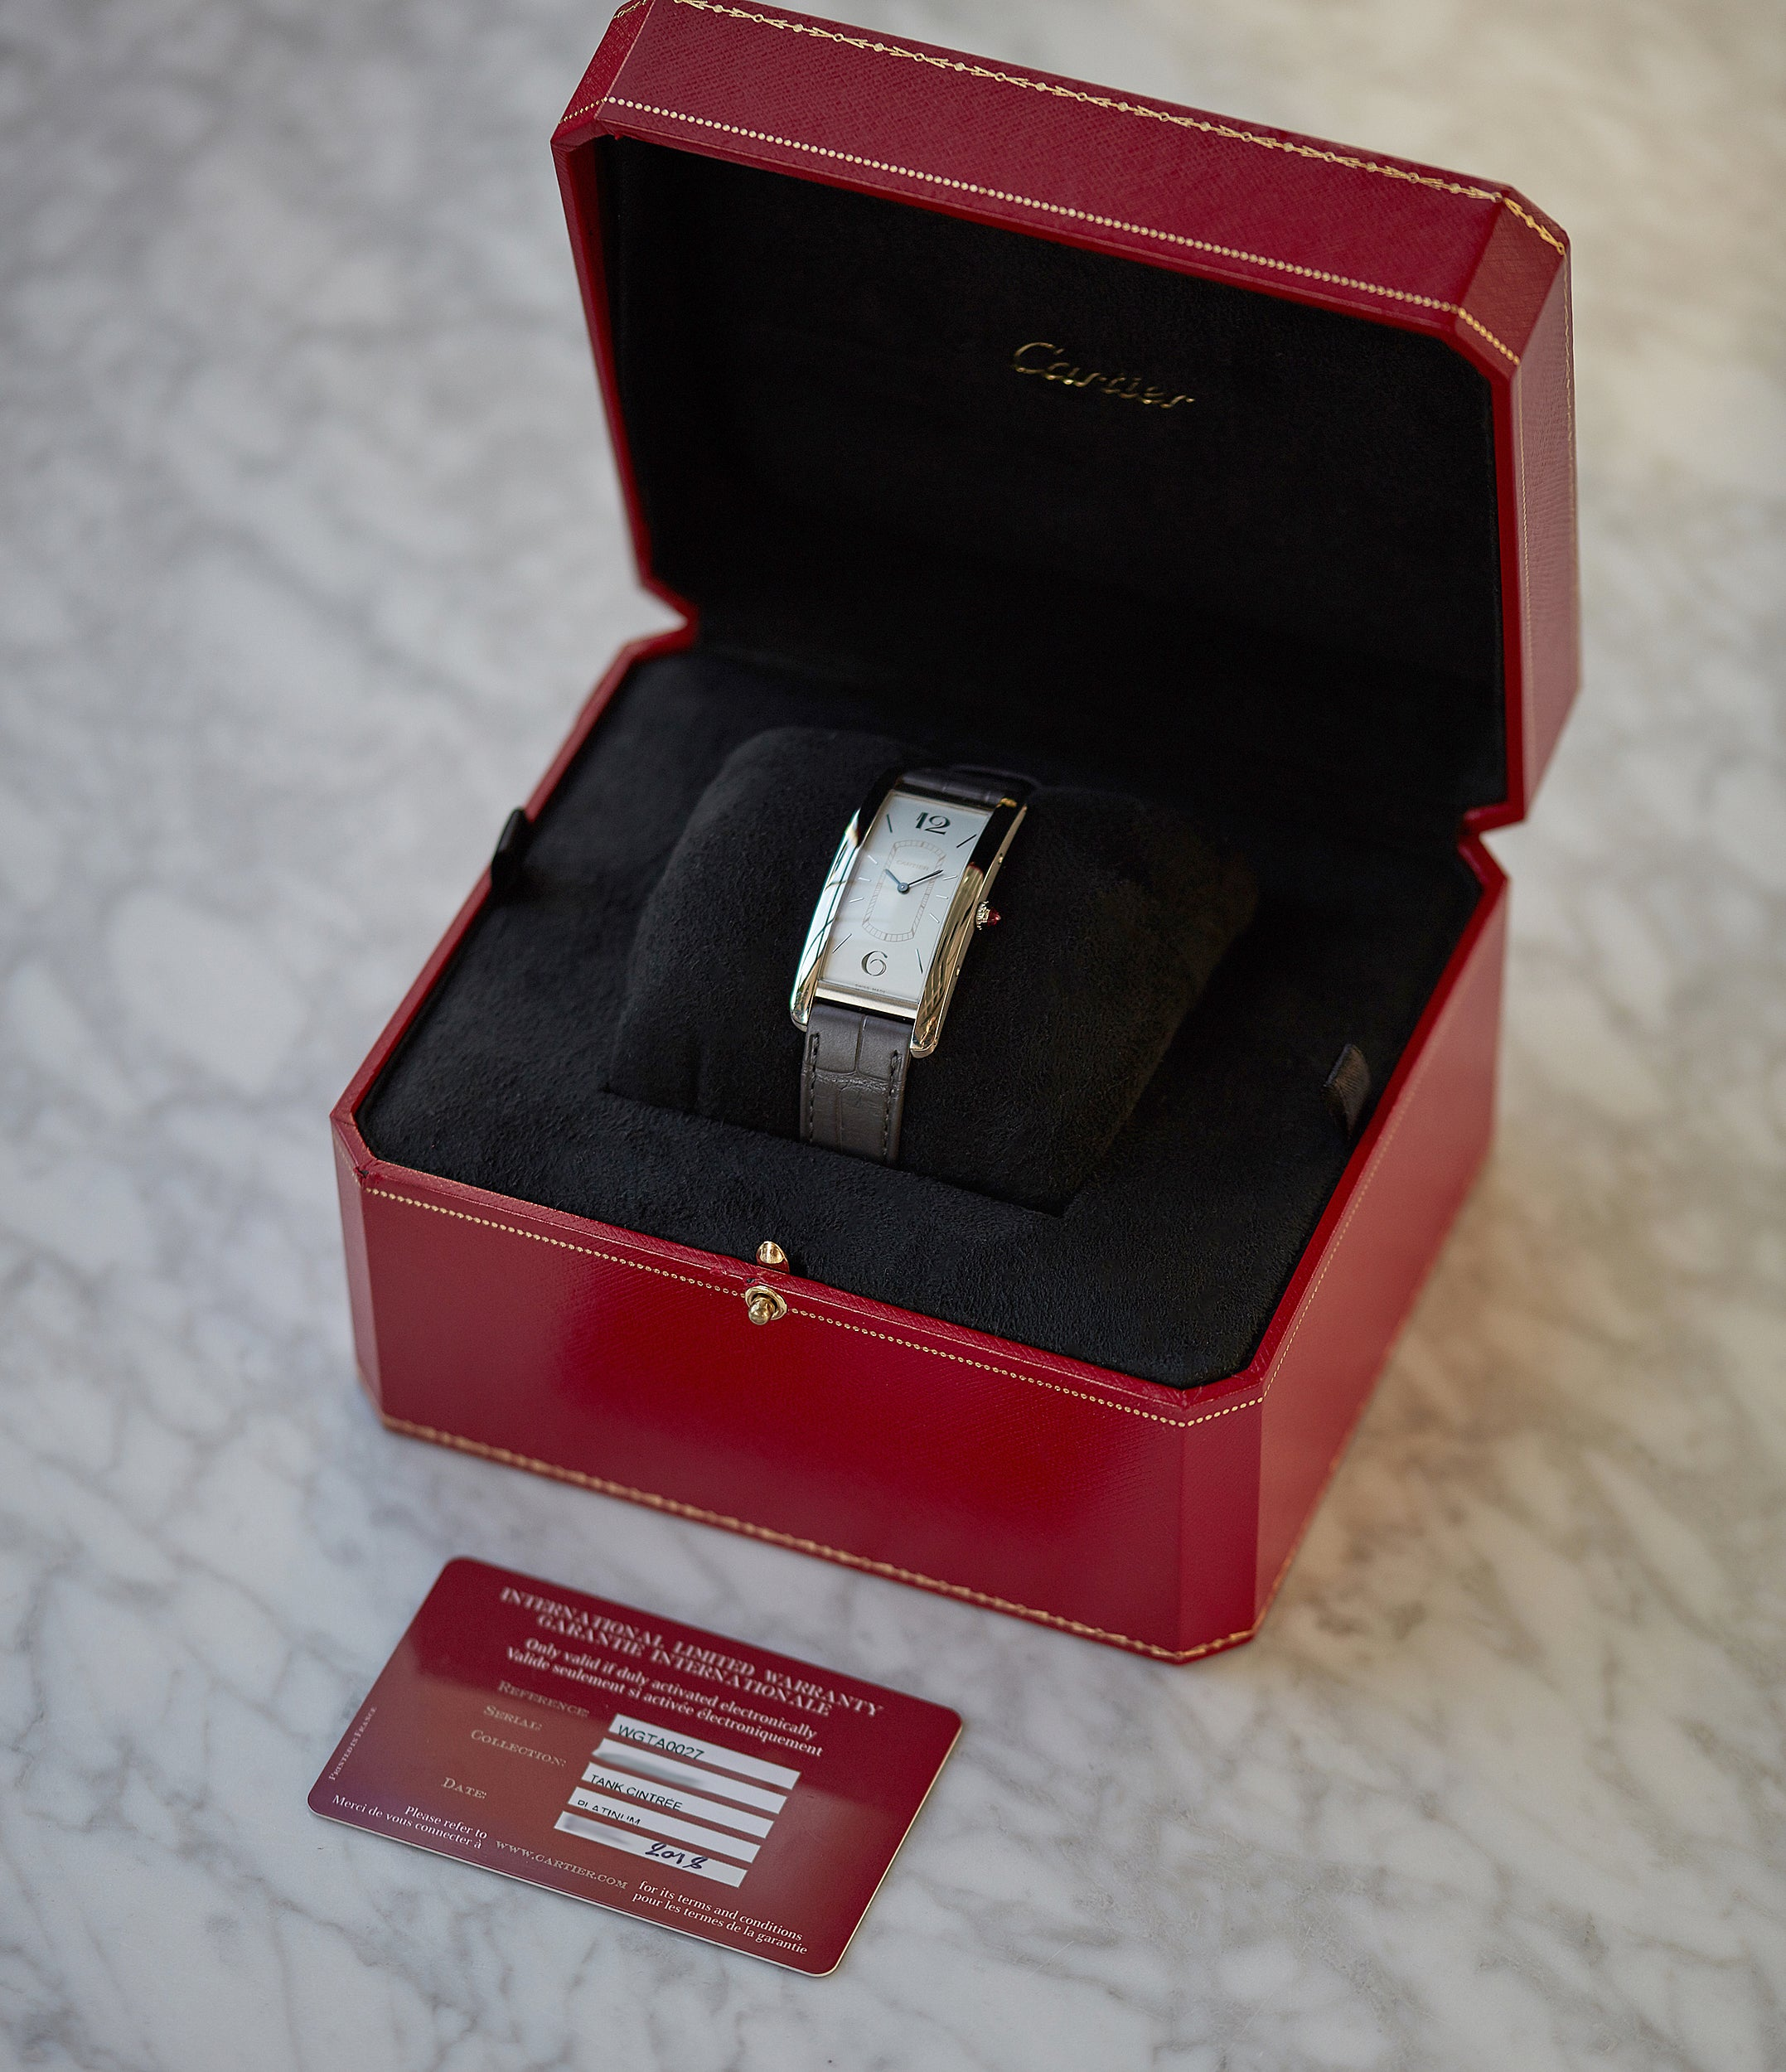 full set pre-owned Cartier Tank Cintree platinum limited edition time-only watch for sale online at A Collected Man London UK rare watch specialist